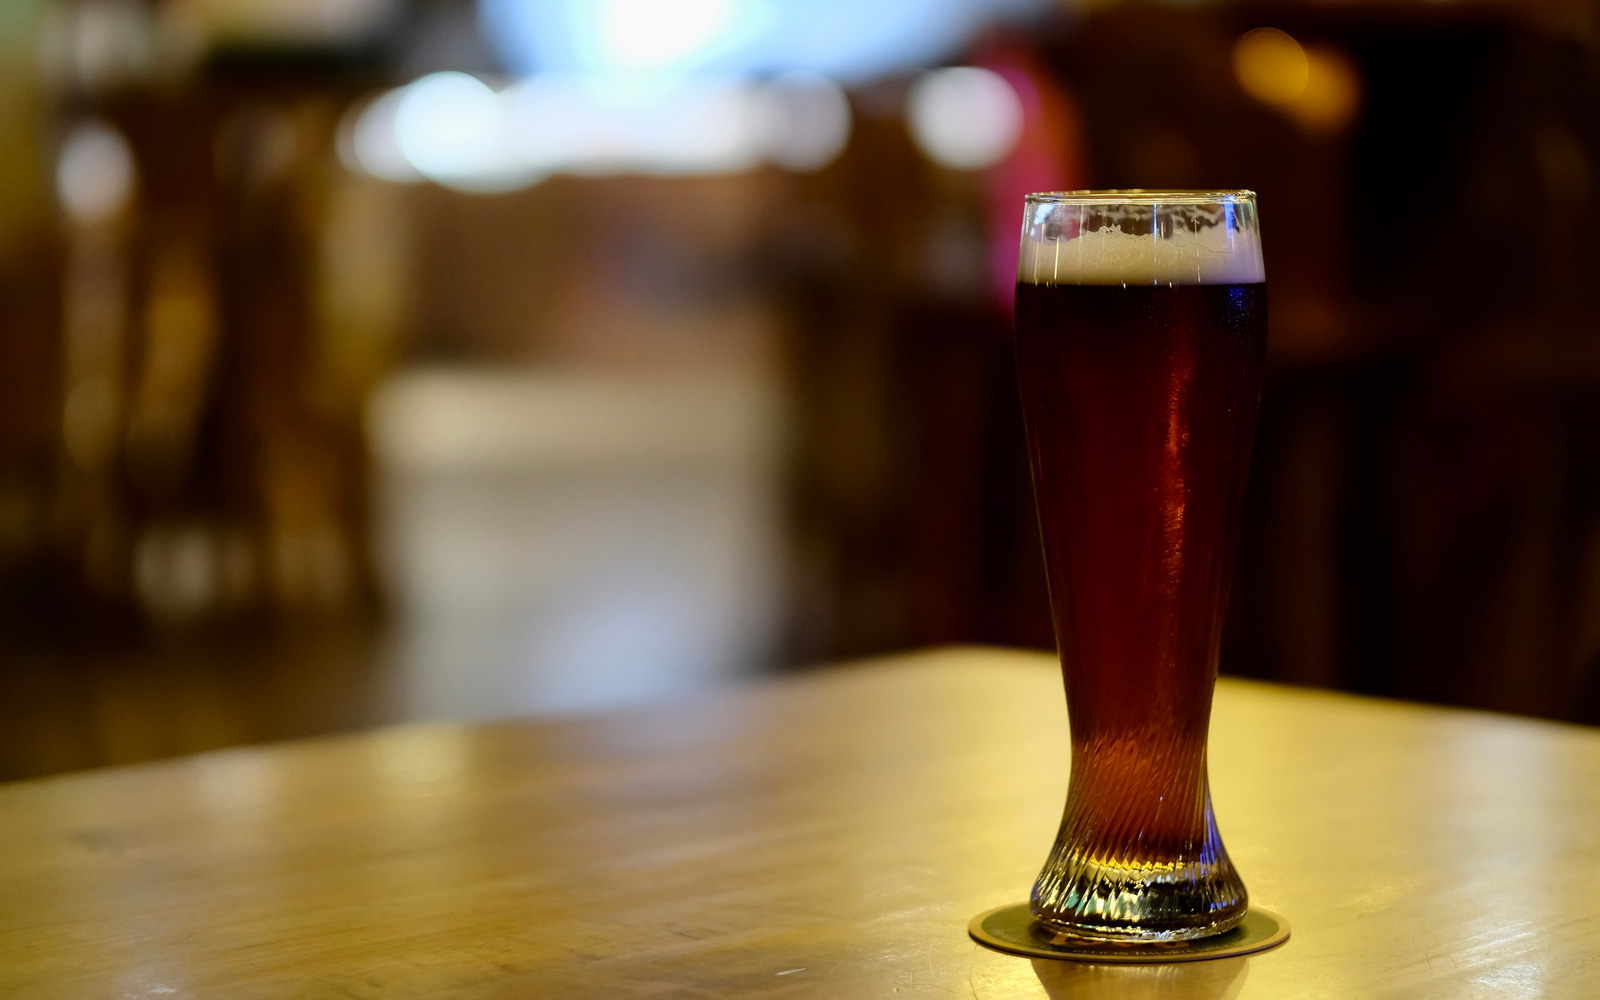 Drinking 'Strong Beer' Is Just As Good for Your Gut As Taking Probiotics, Study Finds